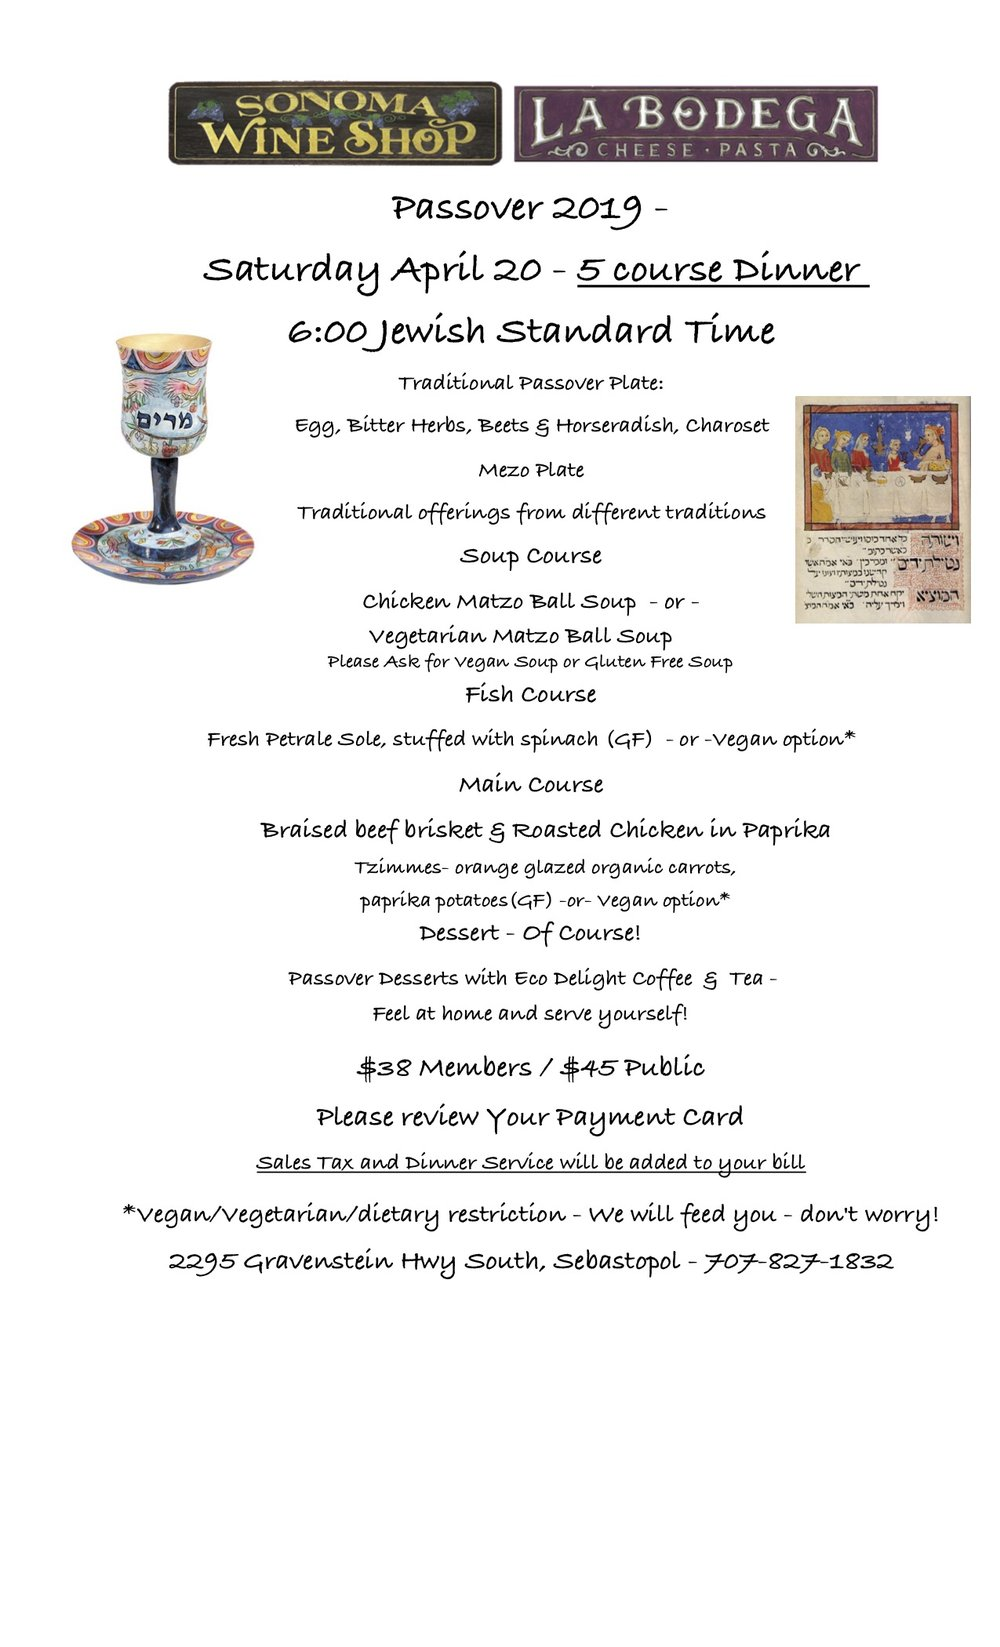 passover dinner menu 2019 Friday copy.jpg